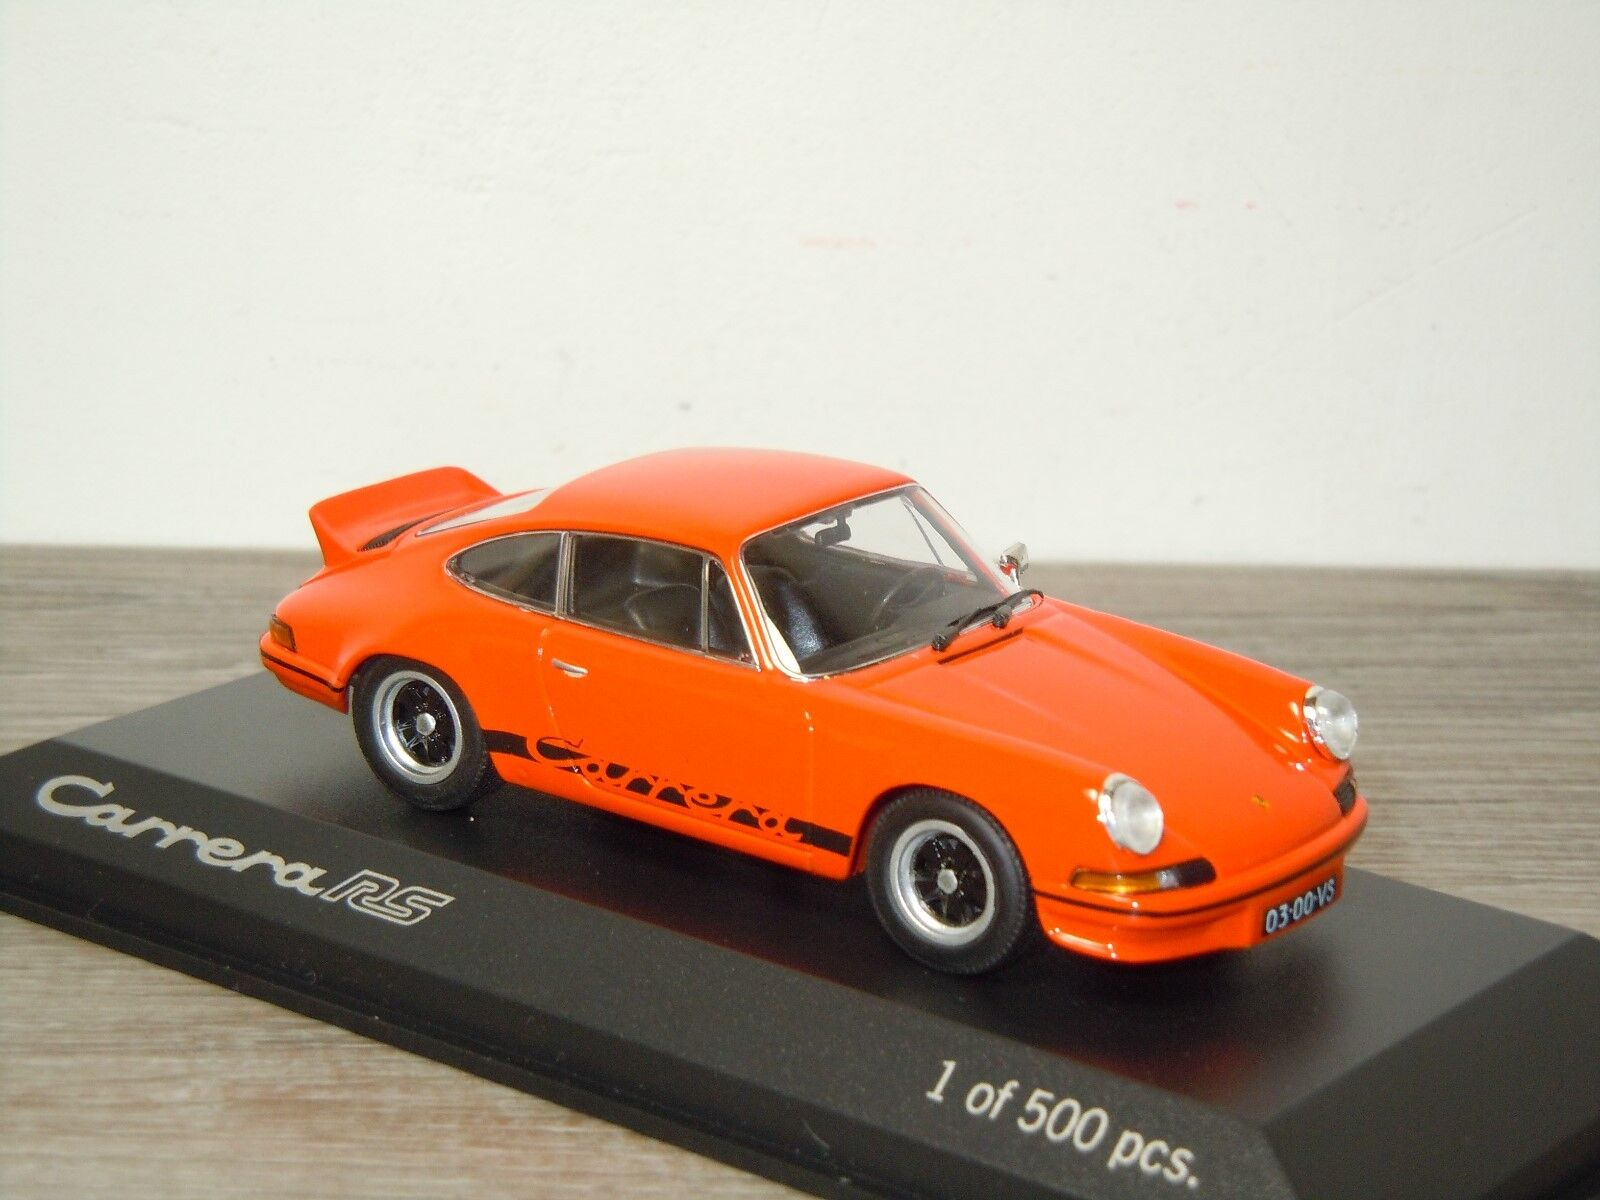 Porsche 911 Carrera RS - Minichamps 1 43 in Box Box Box 30327 0adb28